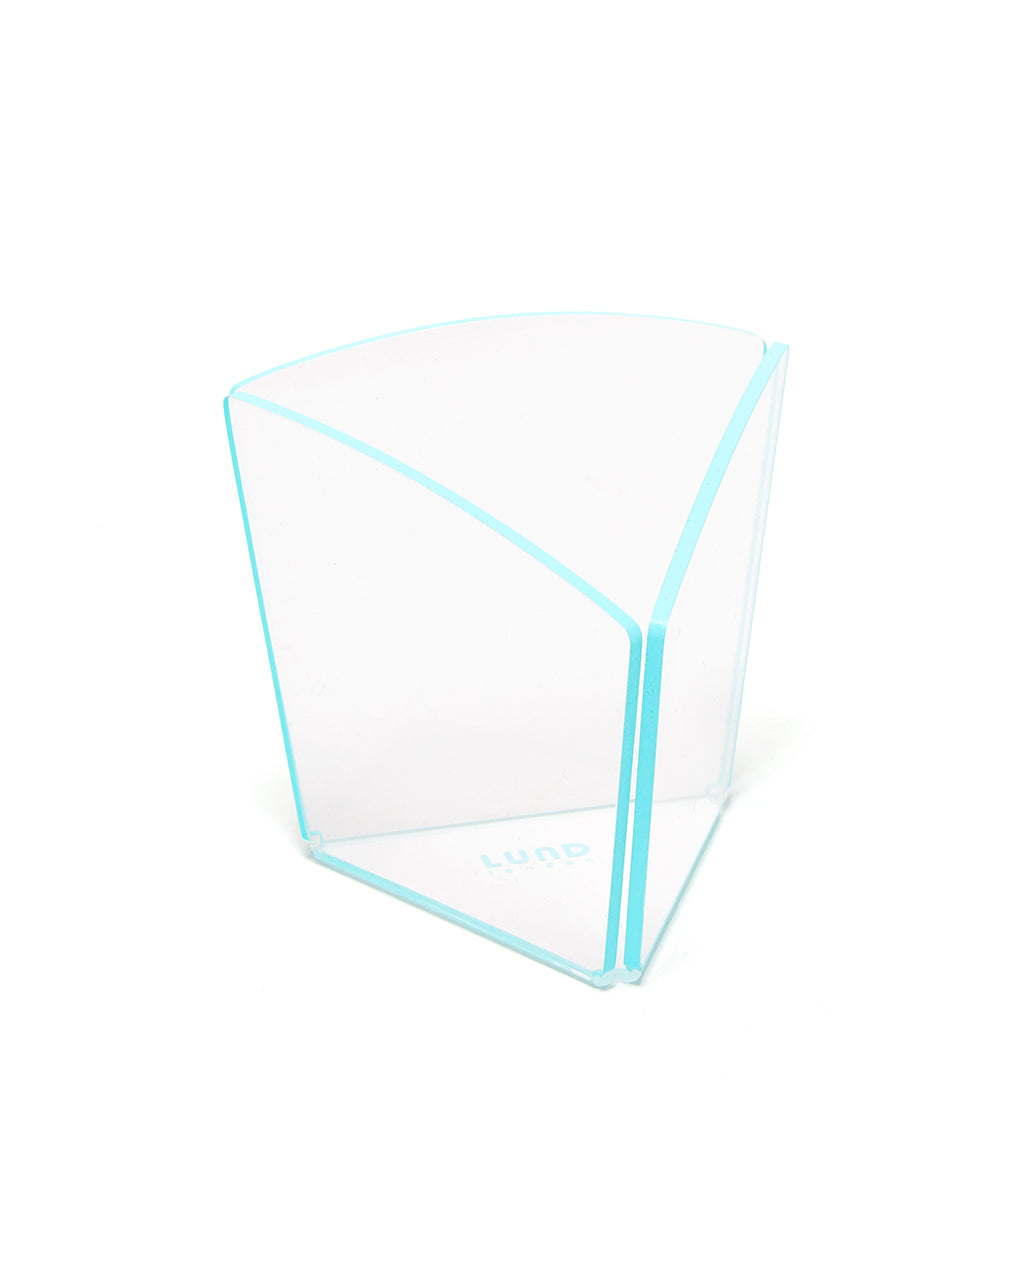 Flash Tidy Acrylic Pencil Cup - Blue